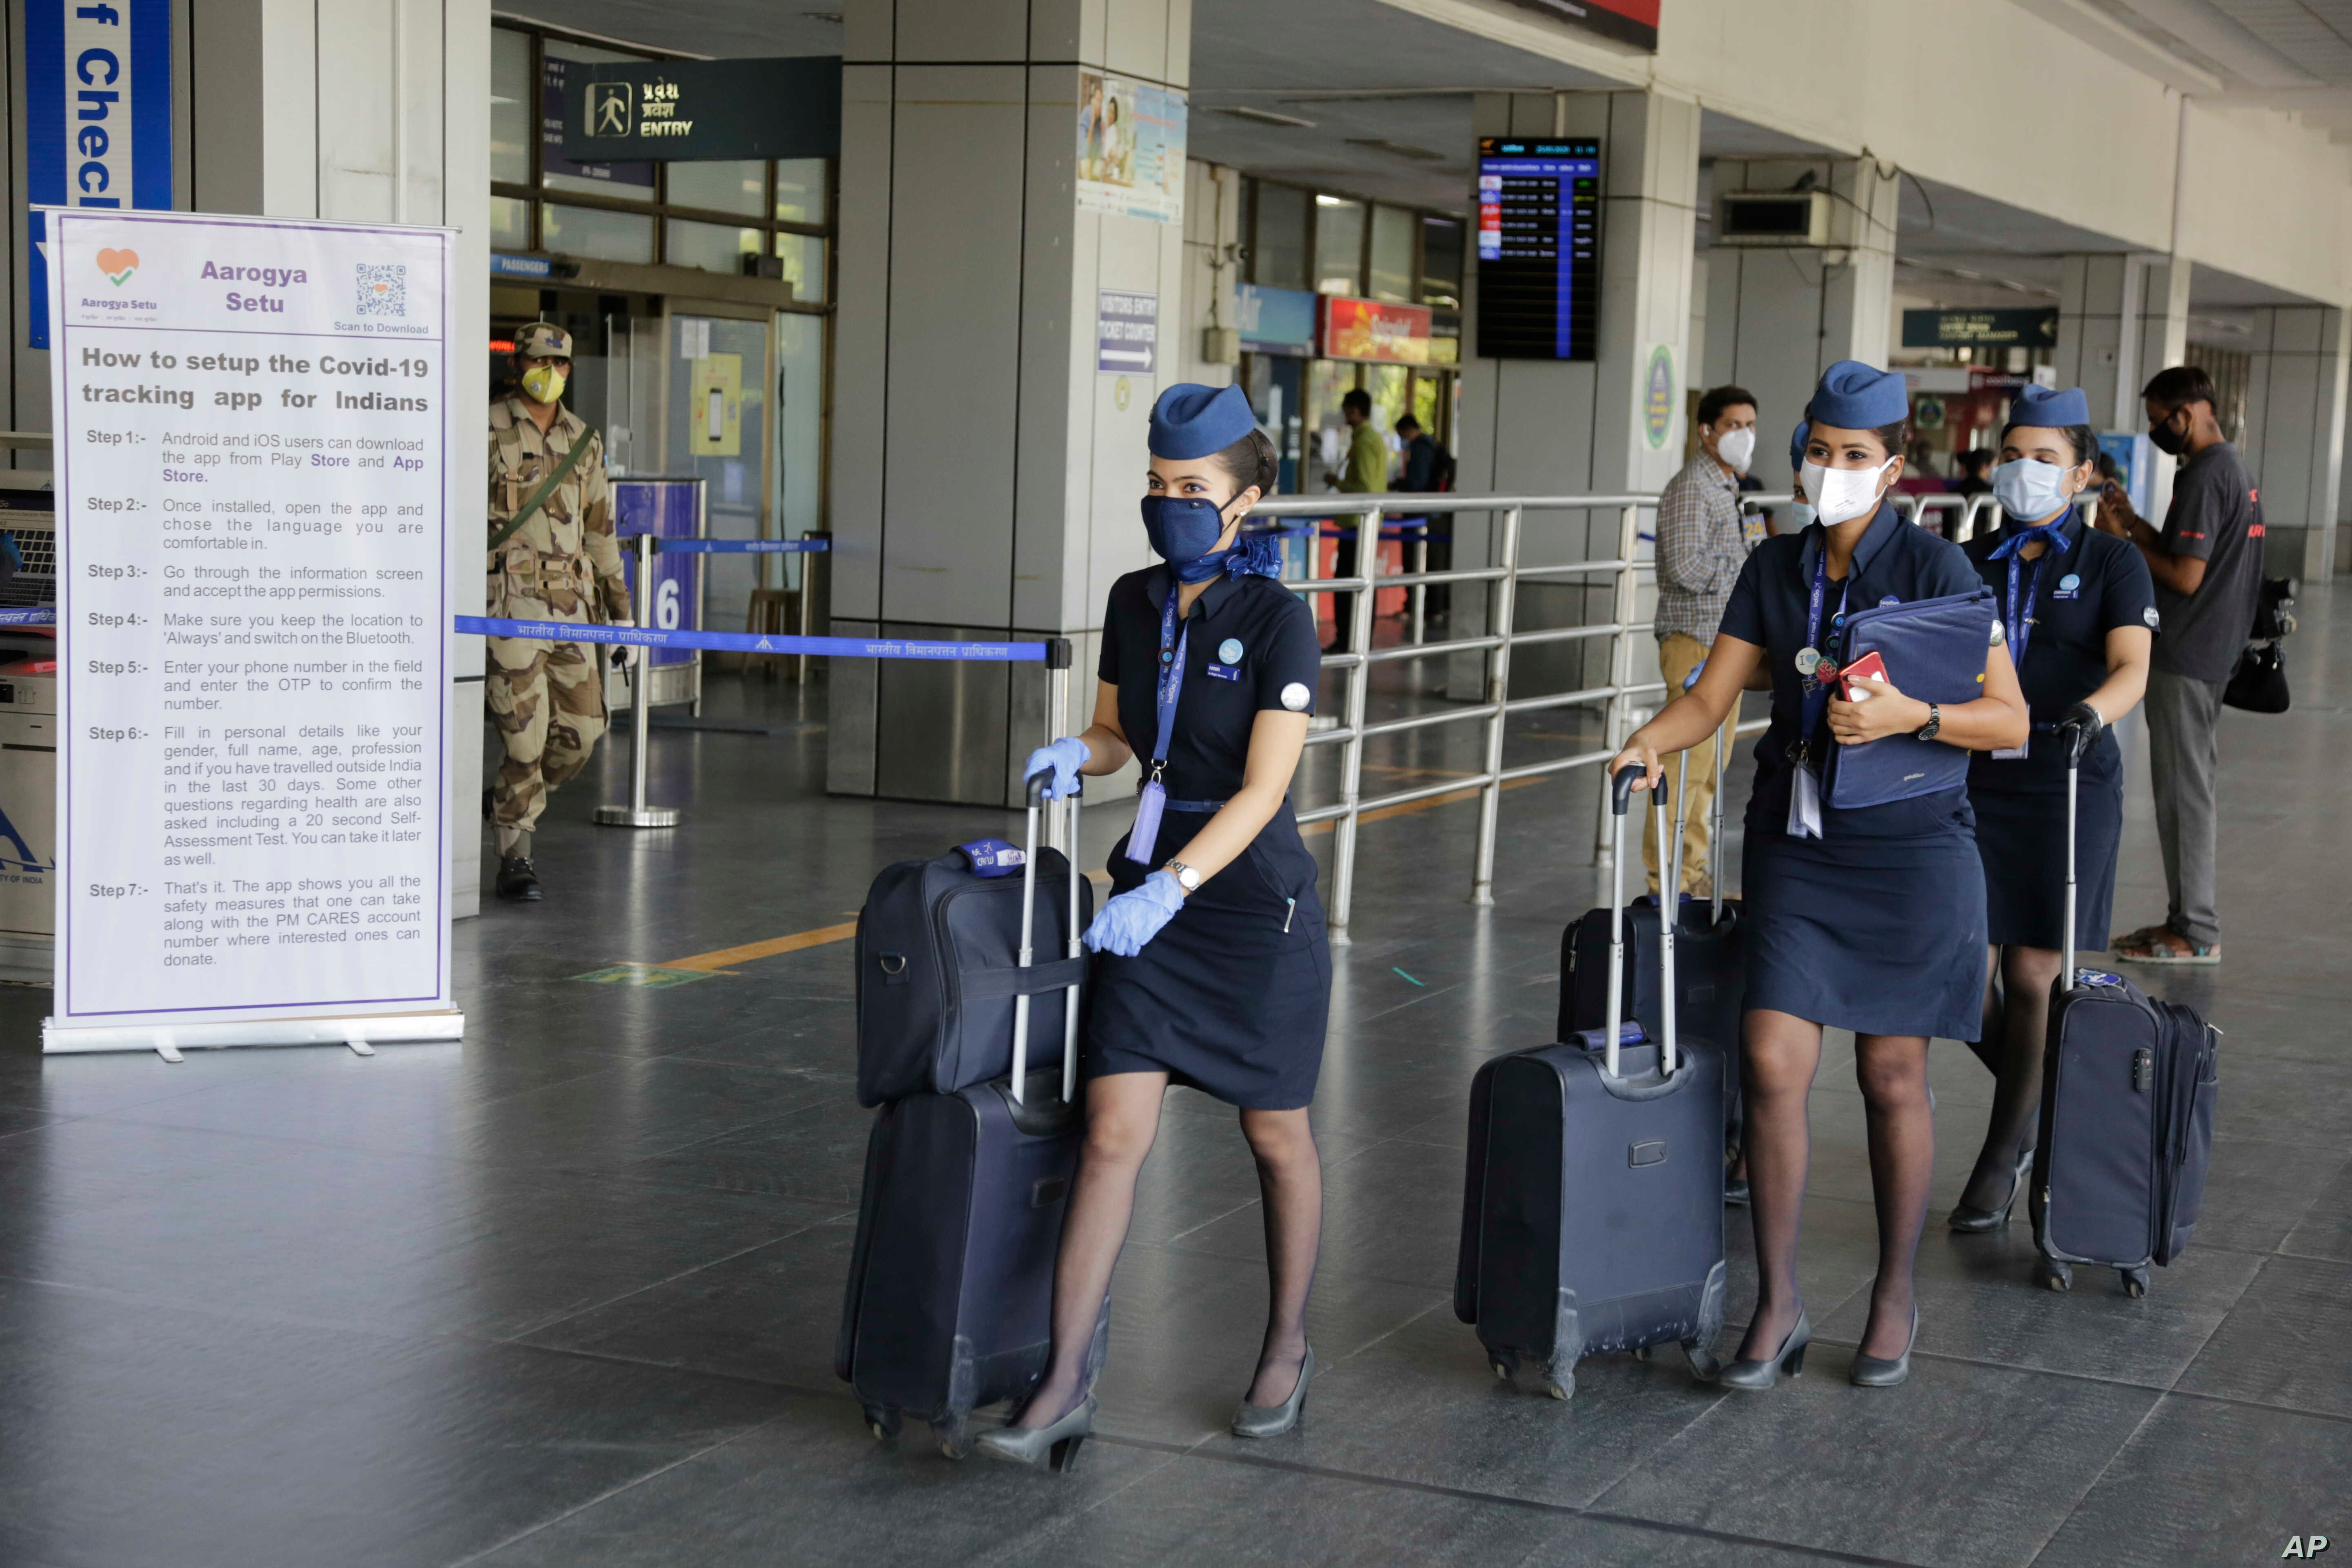 India Resumes Limited Domestic Flights Even As Covid Cases Surge Voice Of America English